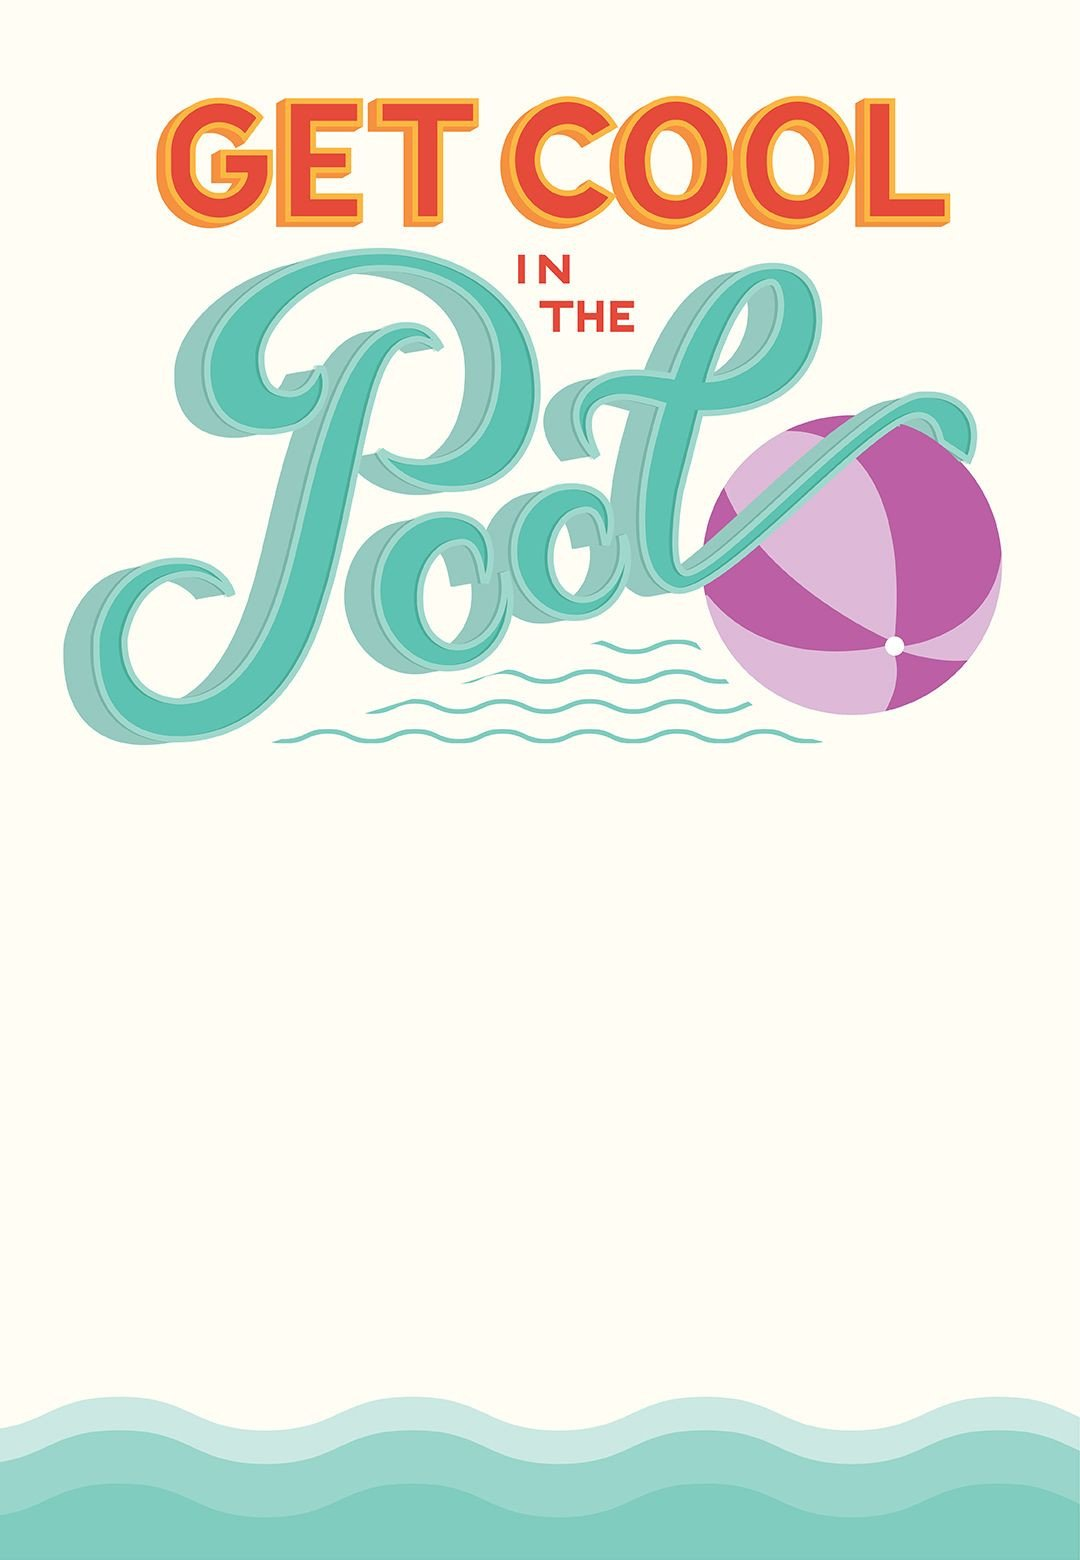 Pool Party Invitations Template Pool Party Free Printable Party Invitation Template